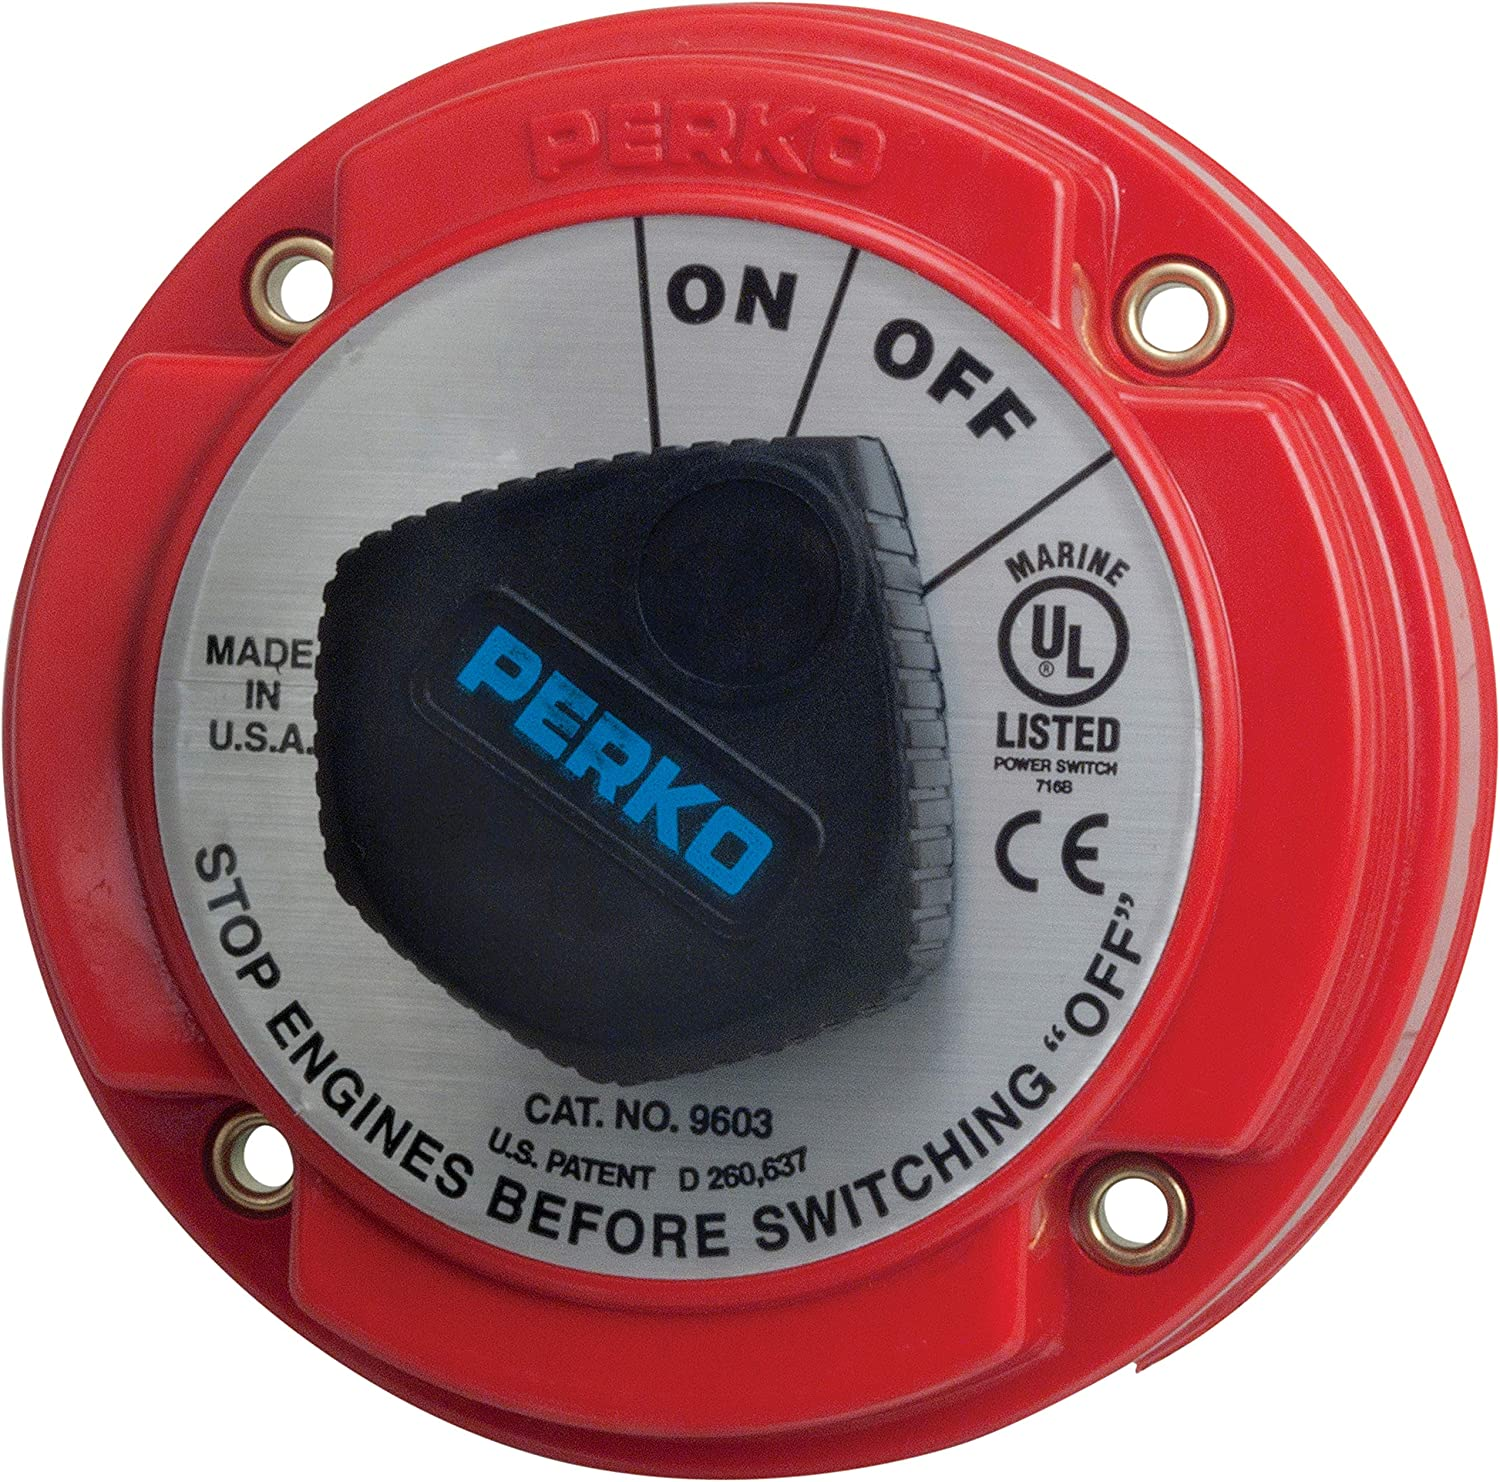 Perko 9603DP Medium Duty Main Battery Disconnect Switch with Alternator Field Disconnect : Boating Battery Switches : Sports & Outdoors